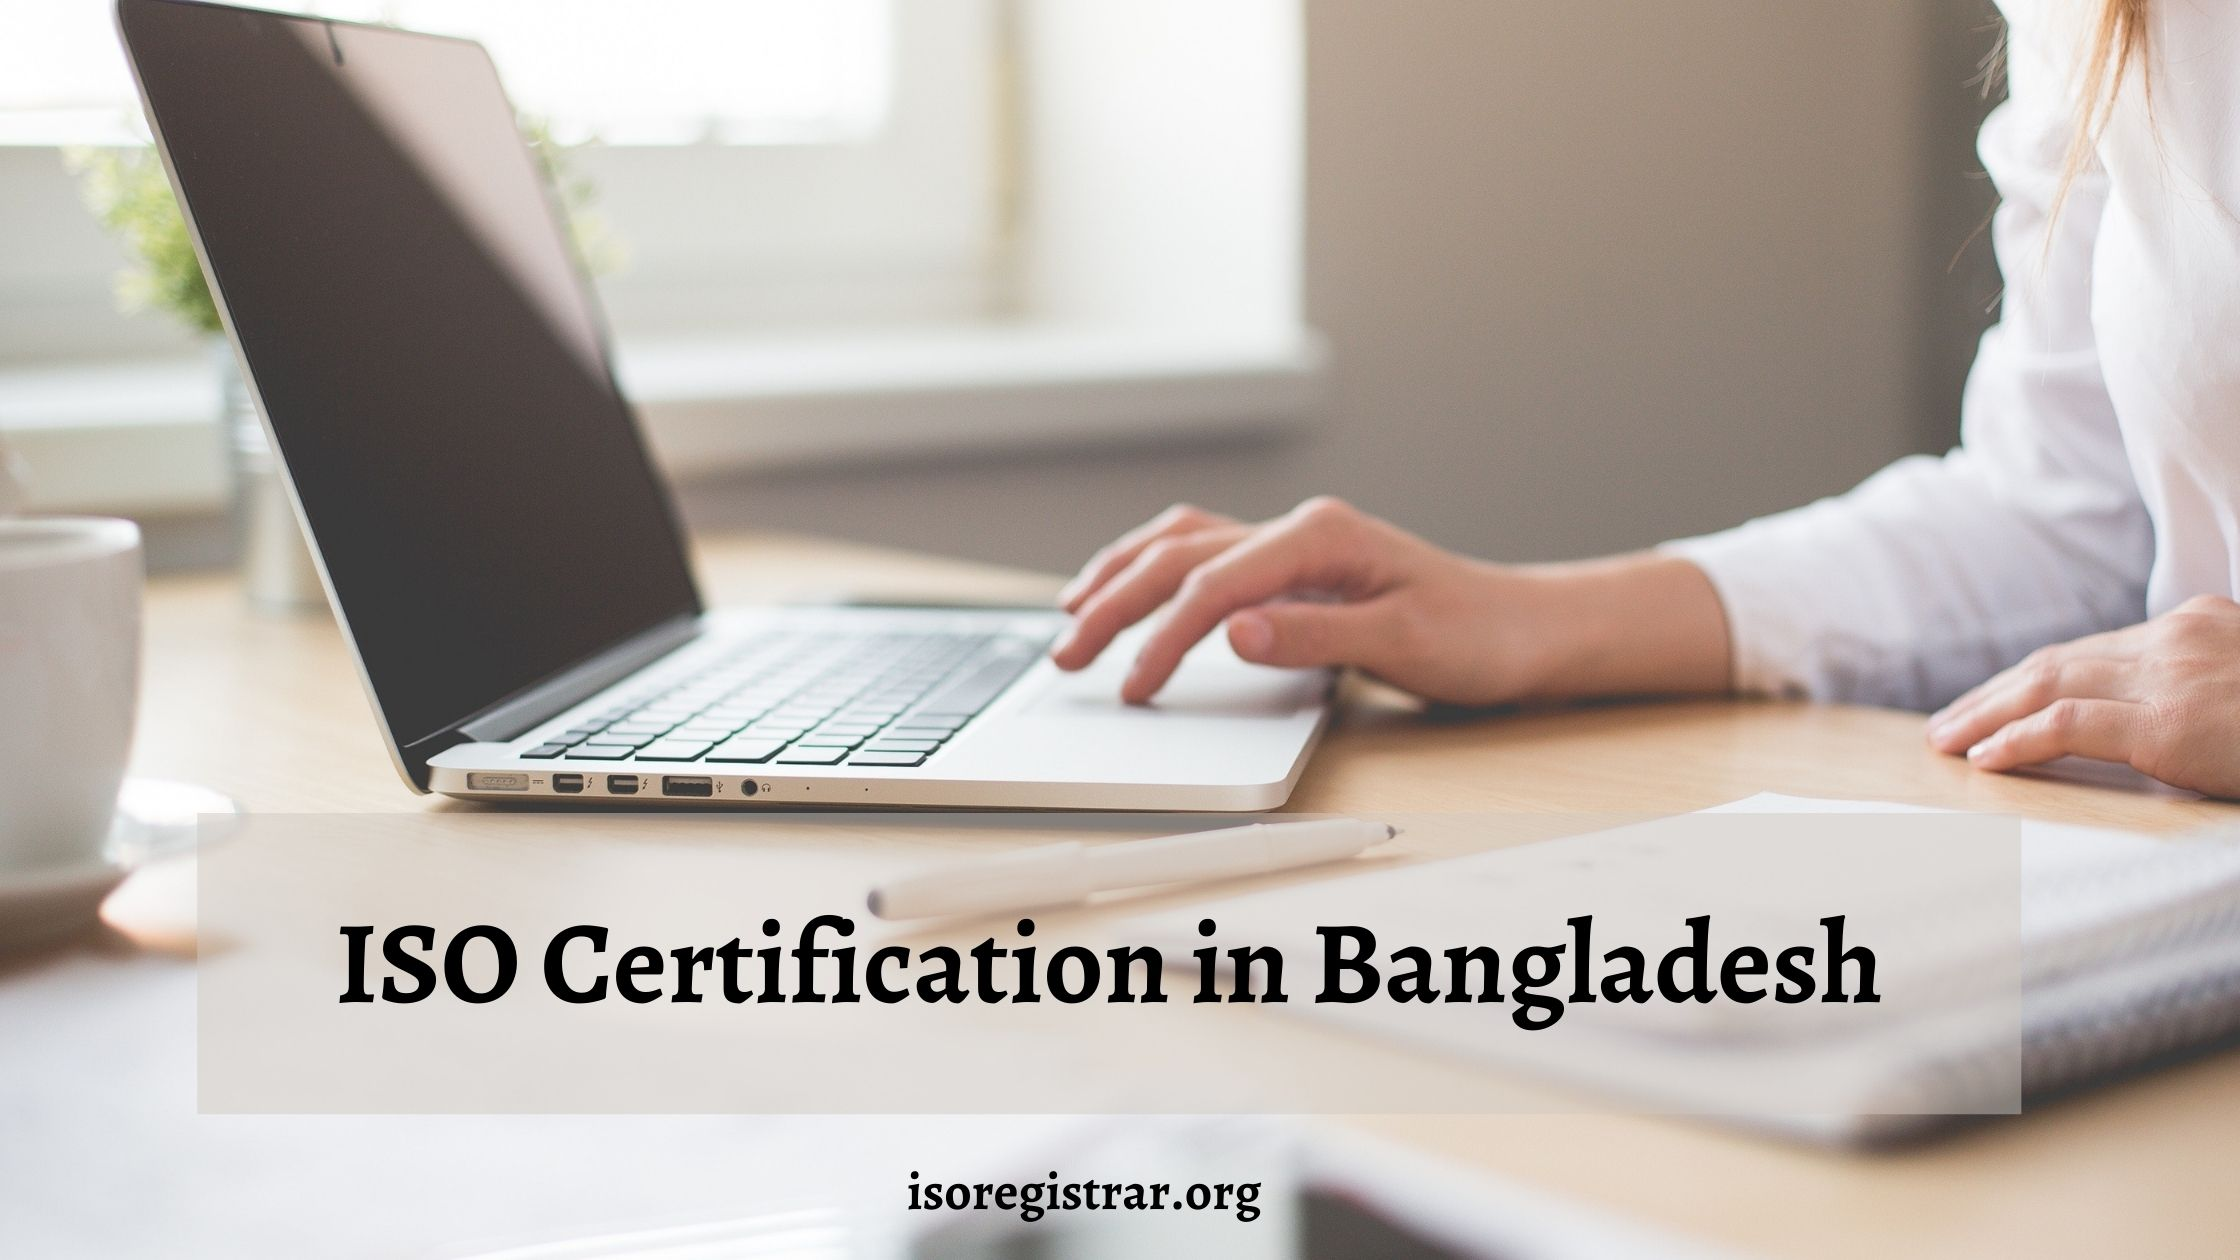 ISO Certification in Bangladesh - ISO Certification Body